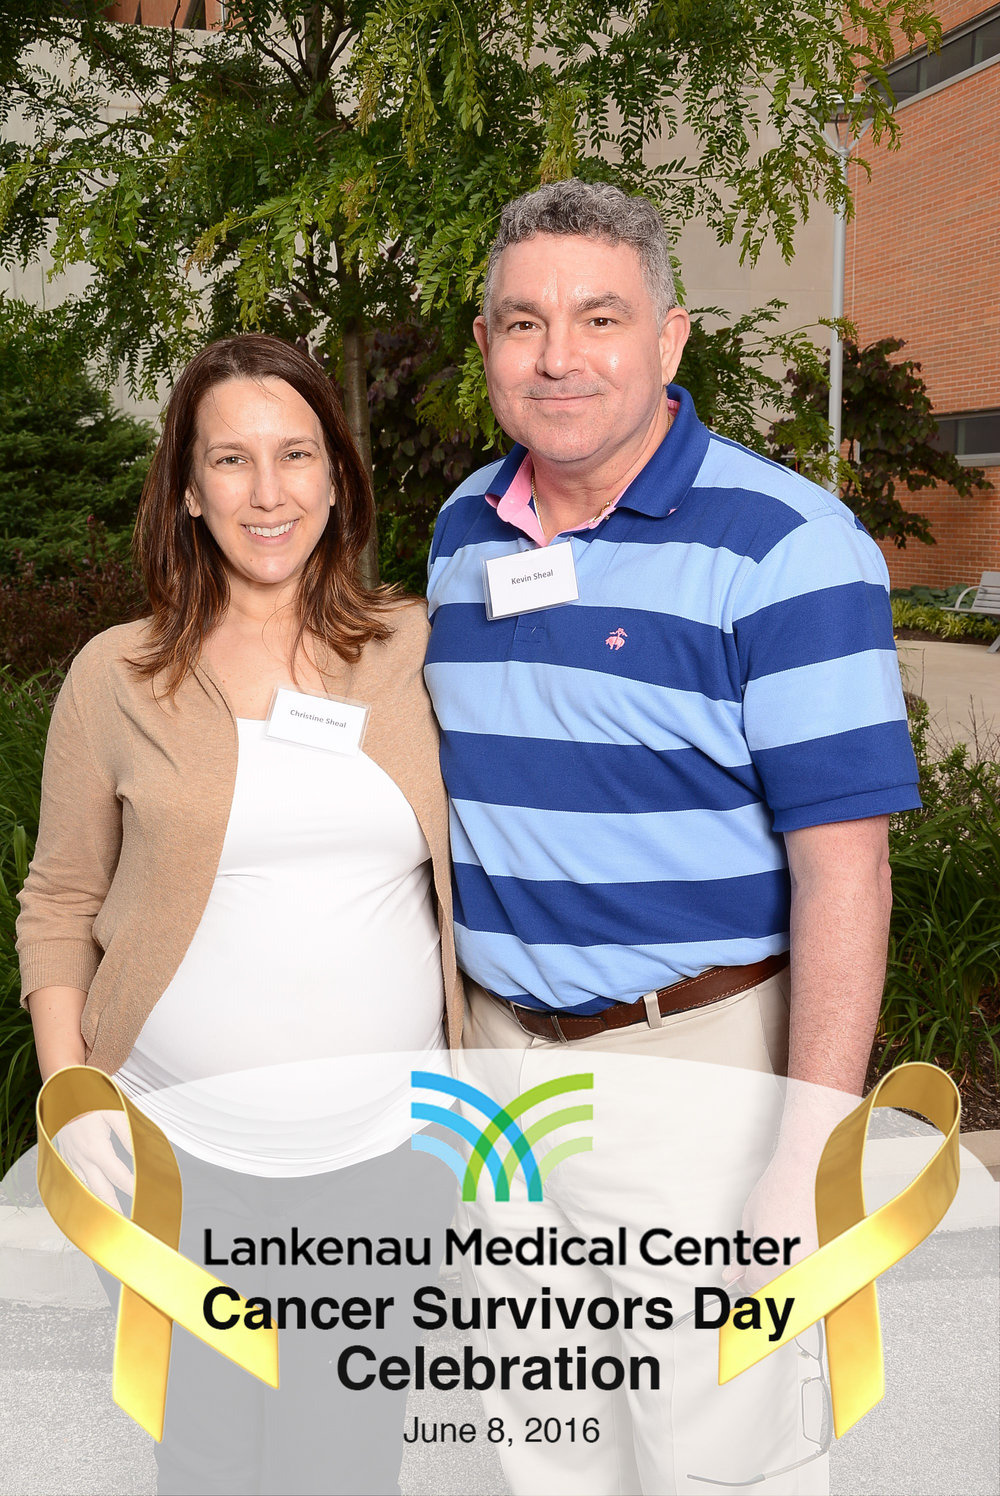 Snap-Party-Studio-Lankenau-Medical-Center2.jpg